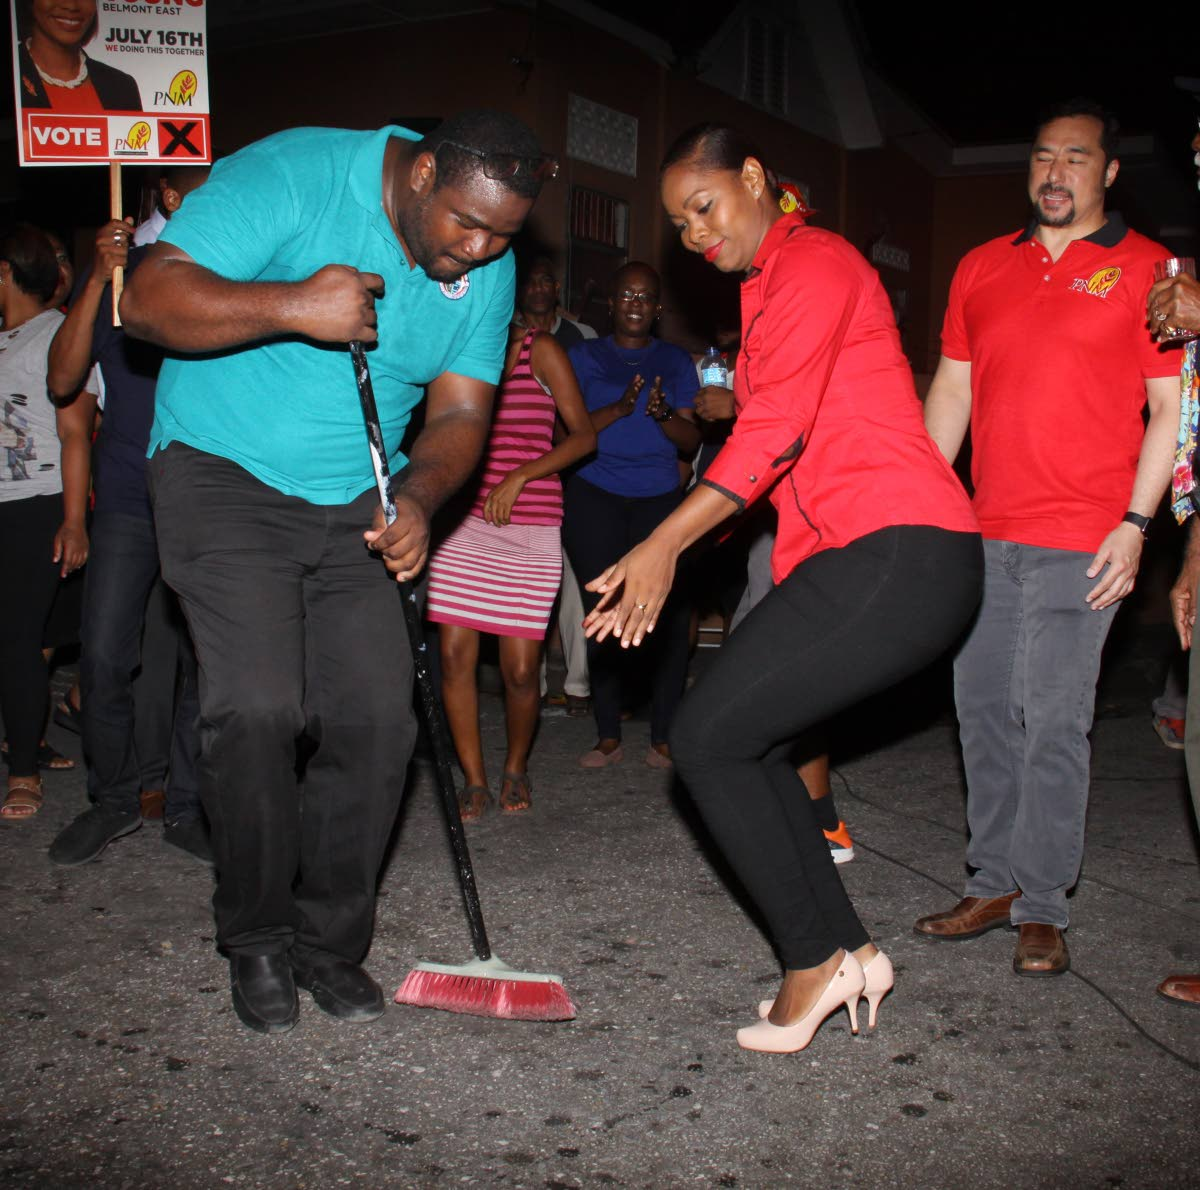 SWEEP THEM: PNM councillor-elect Nicole Young dances while PoS Deputy Hillan Morean sweeps the ground to signify the party's dominance in the Belmont East by elections.